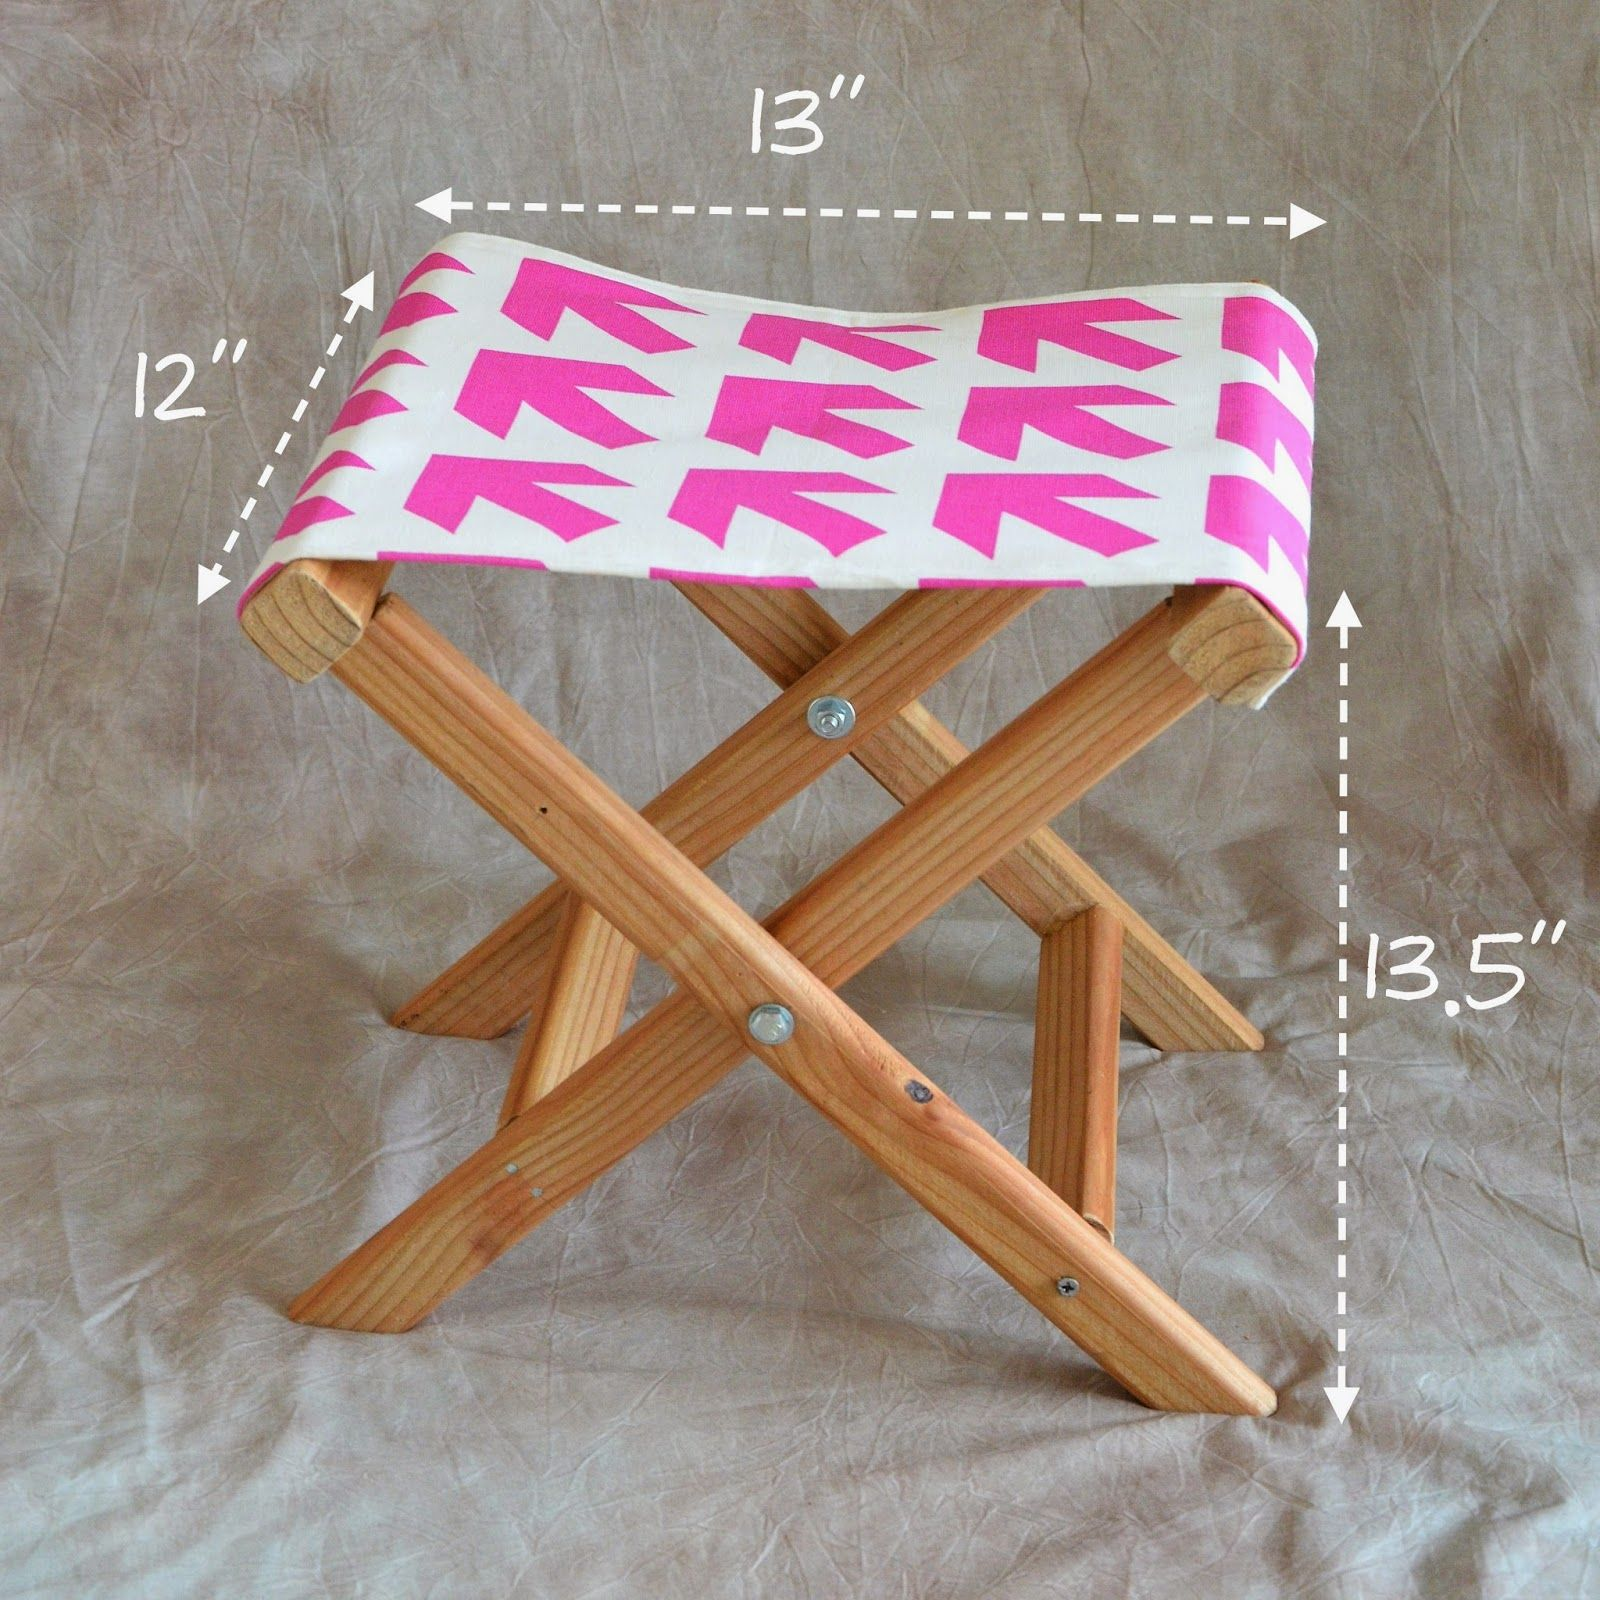 Swell Pin By Samantha Fiedler On Wooden Camping Stool Wooden Machost Co Dining Chair Design Ideas Machostcouk